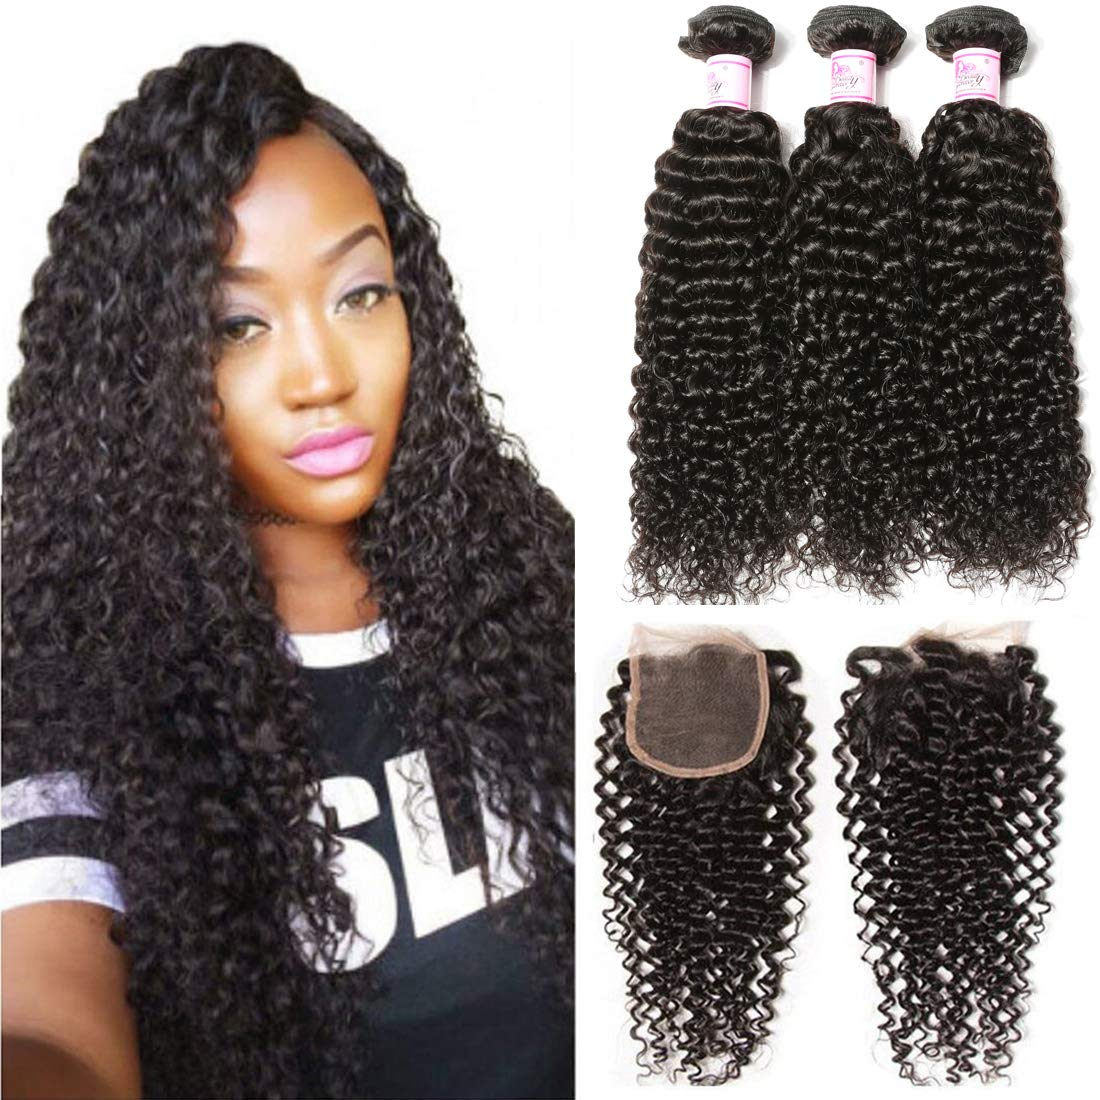 B&F Hair Unprocessed Brazilian Virgin Curly Hair Weave 3piece/lot Bundles with 1piece Free Part Lace Frontal Closure 100% Human Hair Extensions Nature Color (12 14 16+ 10closure)